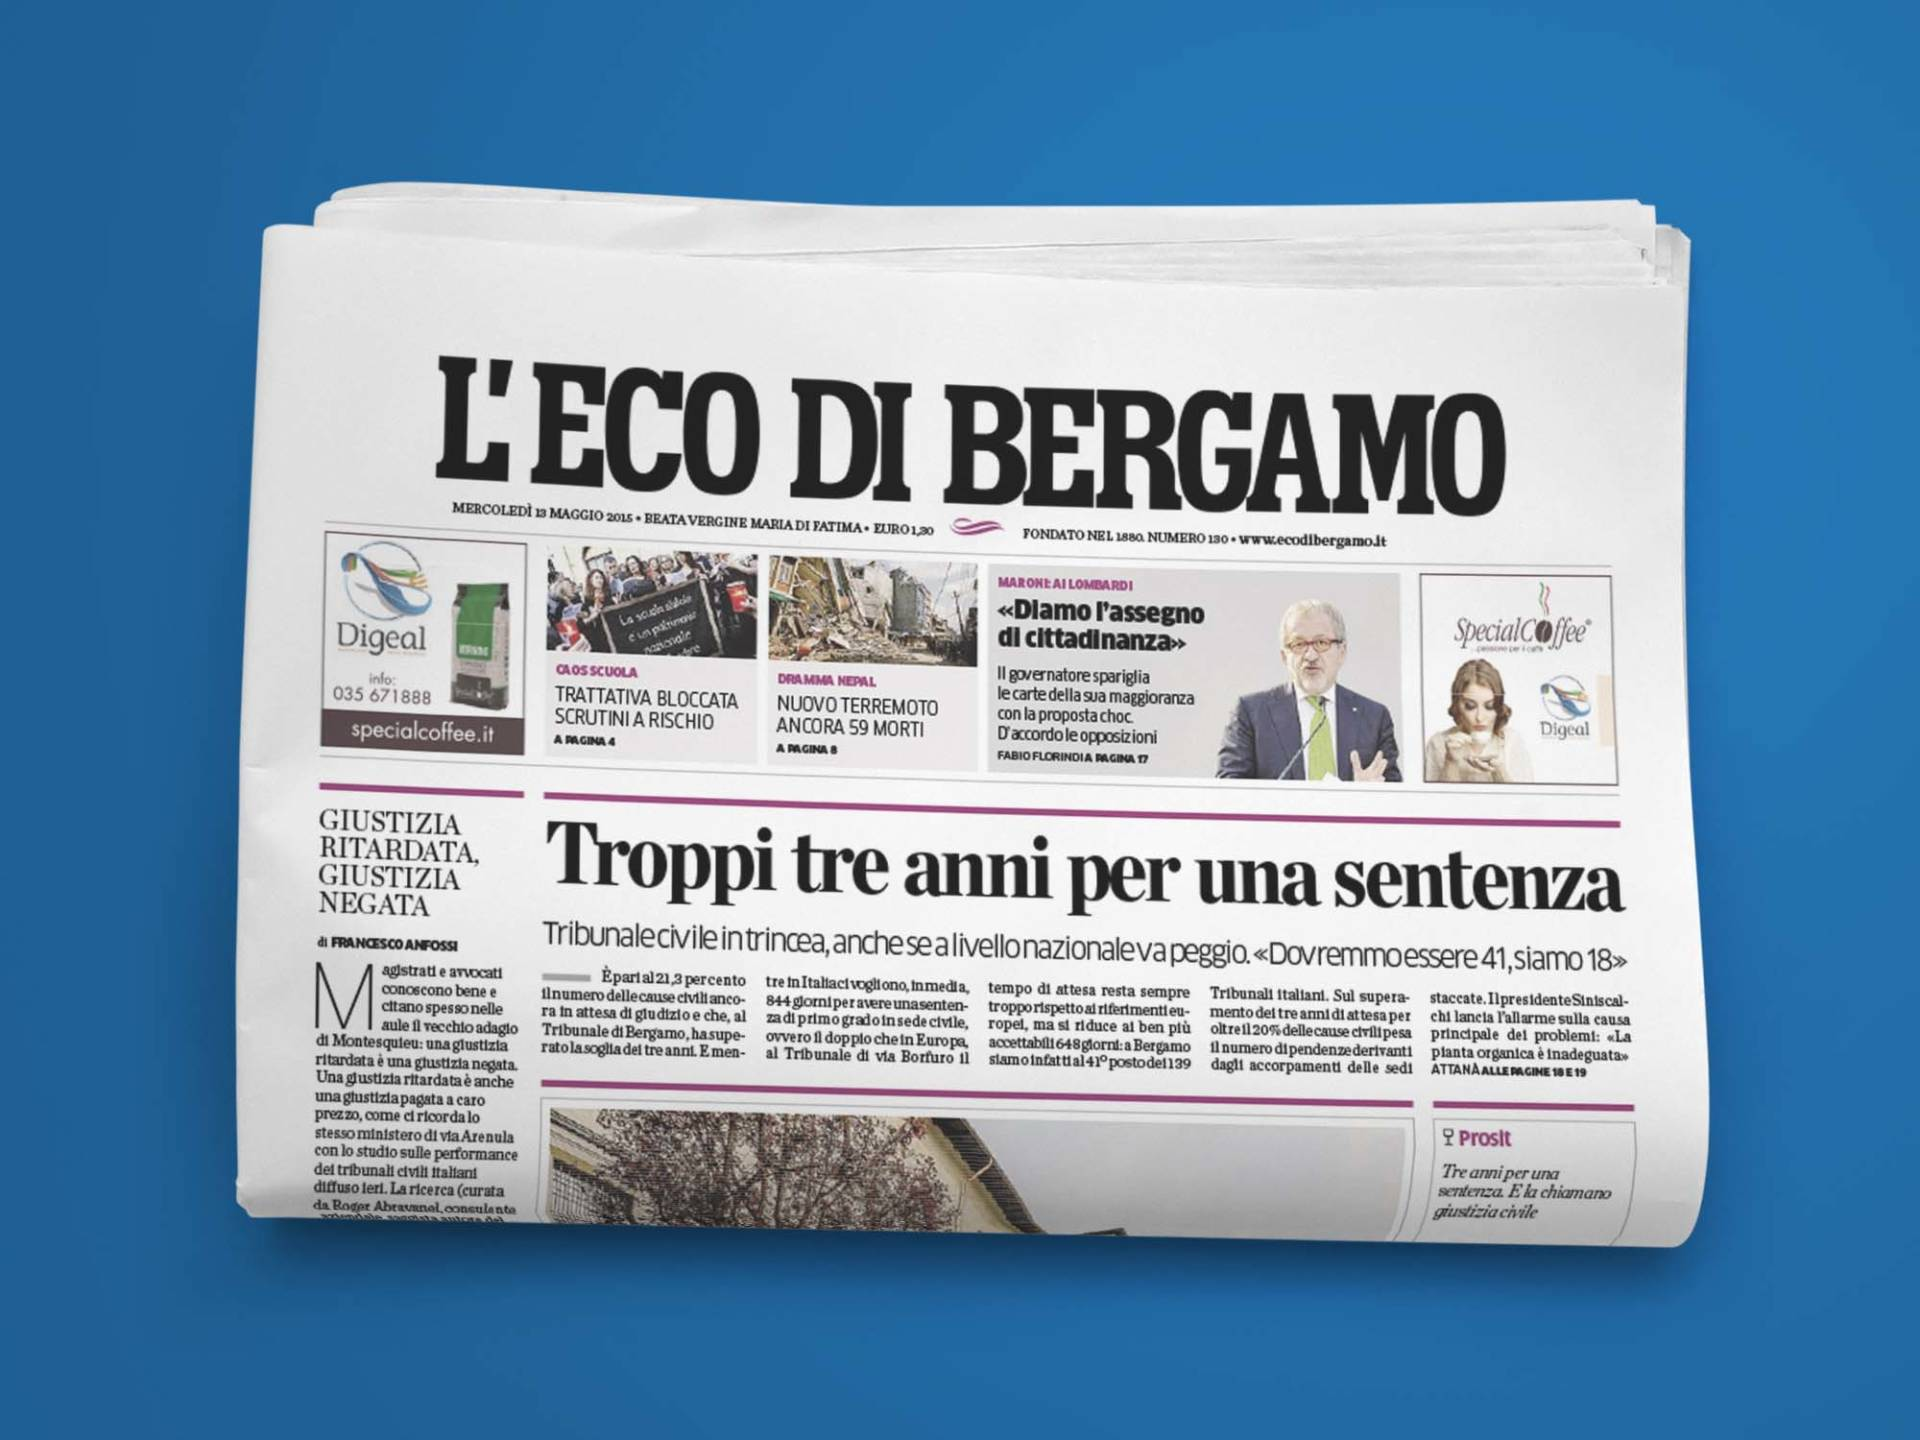 L_Eco_di_Bergamo_01_Wenceslau_News_Design